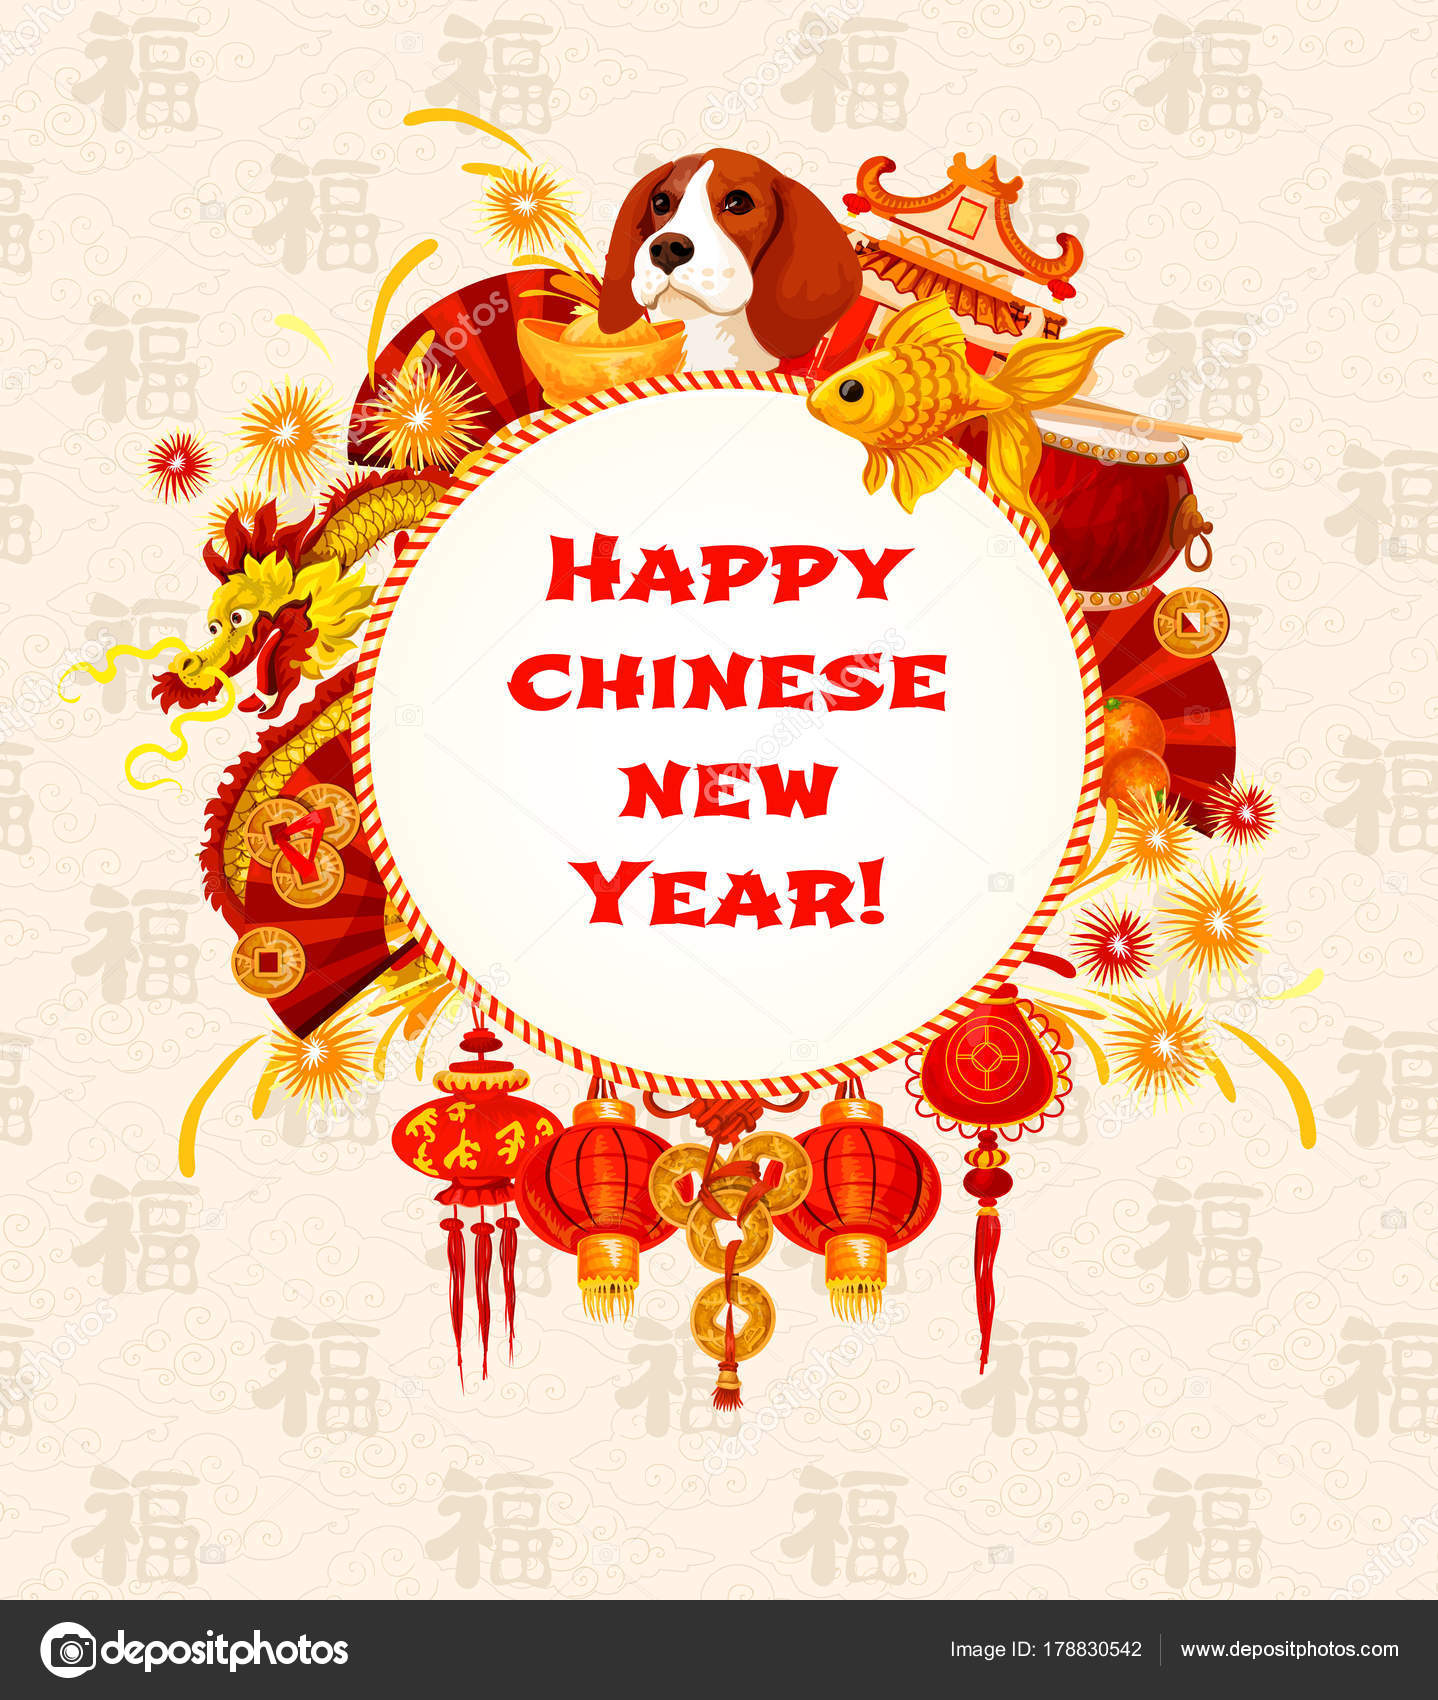 Chinese new year greeting card with festival symbols stock vector chinese new year greeting card with festival symbols stock vector m4hsunfo